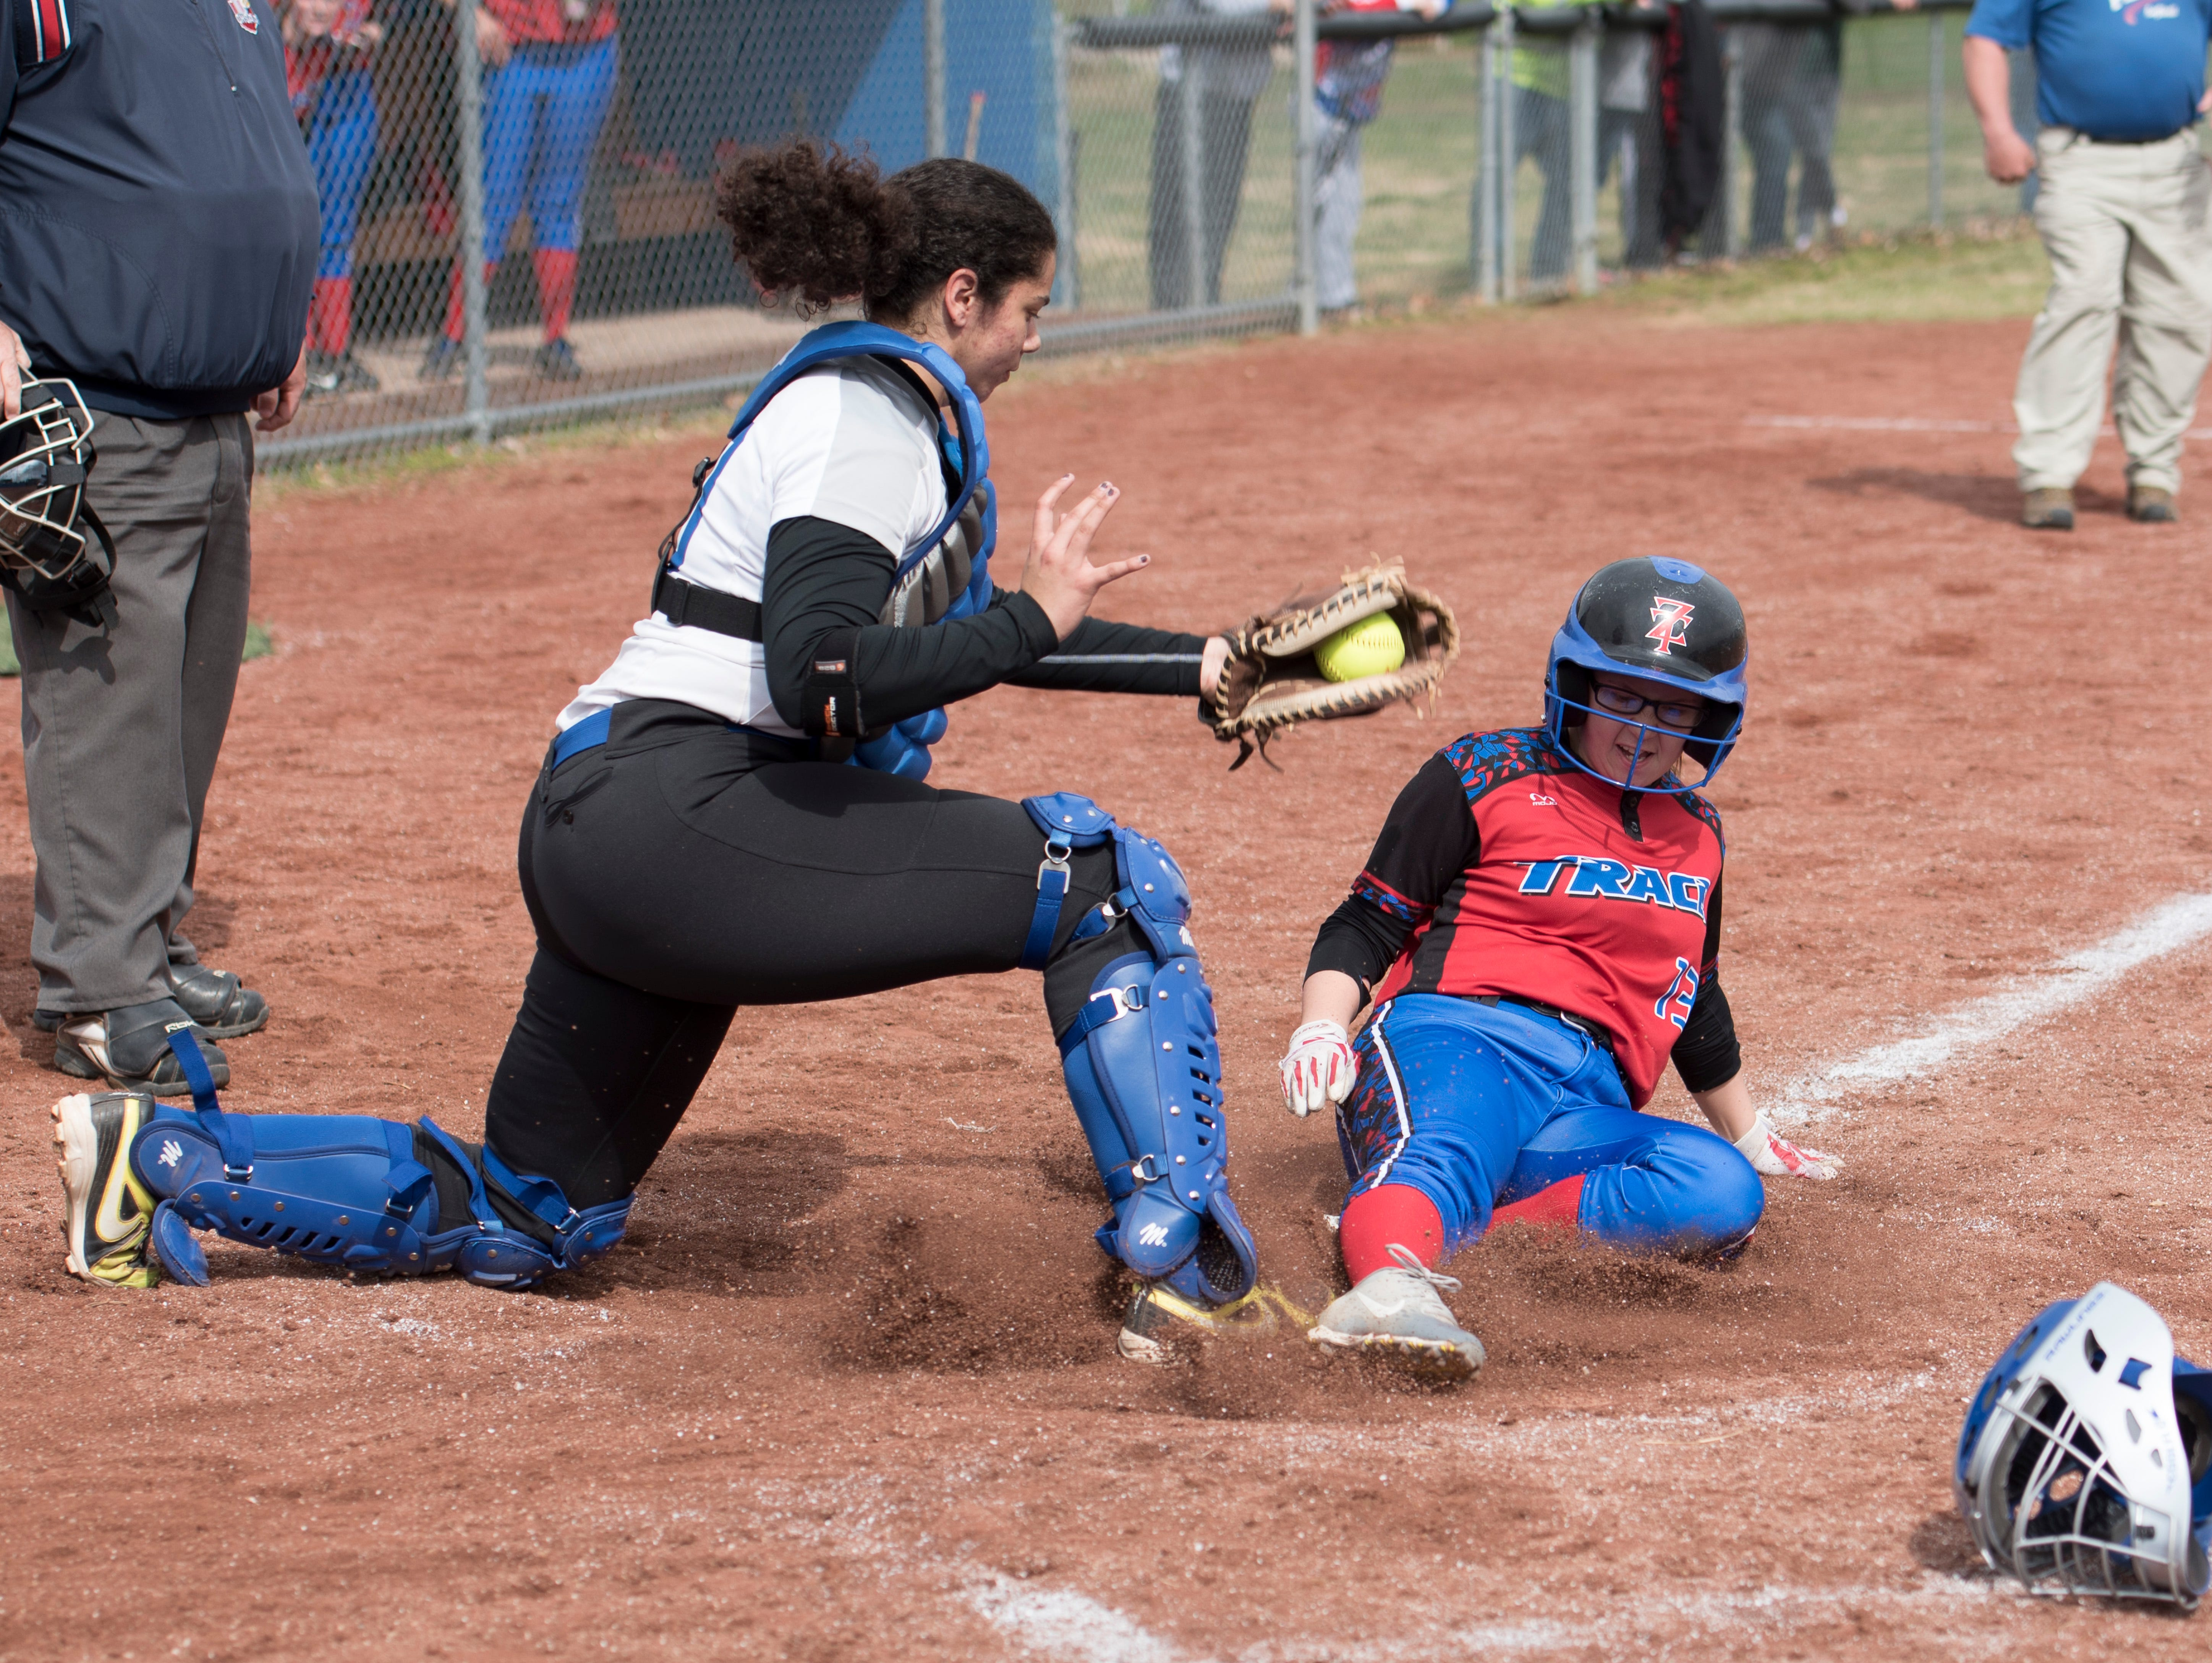 Chillicothe catcher Meliah Johnson attempts to tag Zane Trace's Makenzie Lunsford out as she slides into home during the first of two double header games at Mt. Logan Elementary. Zane Trace went on to win the first game 10-7.